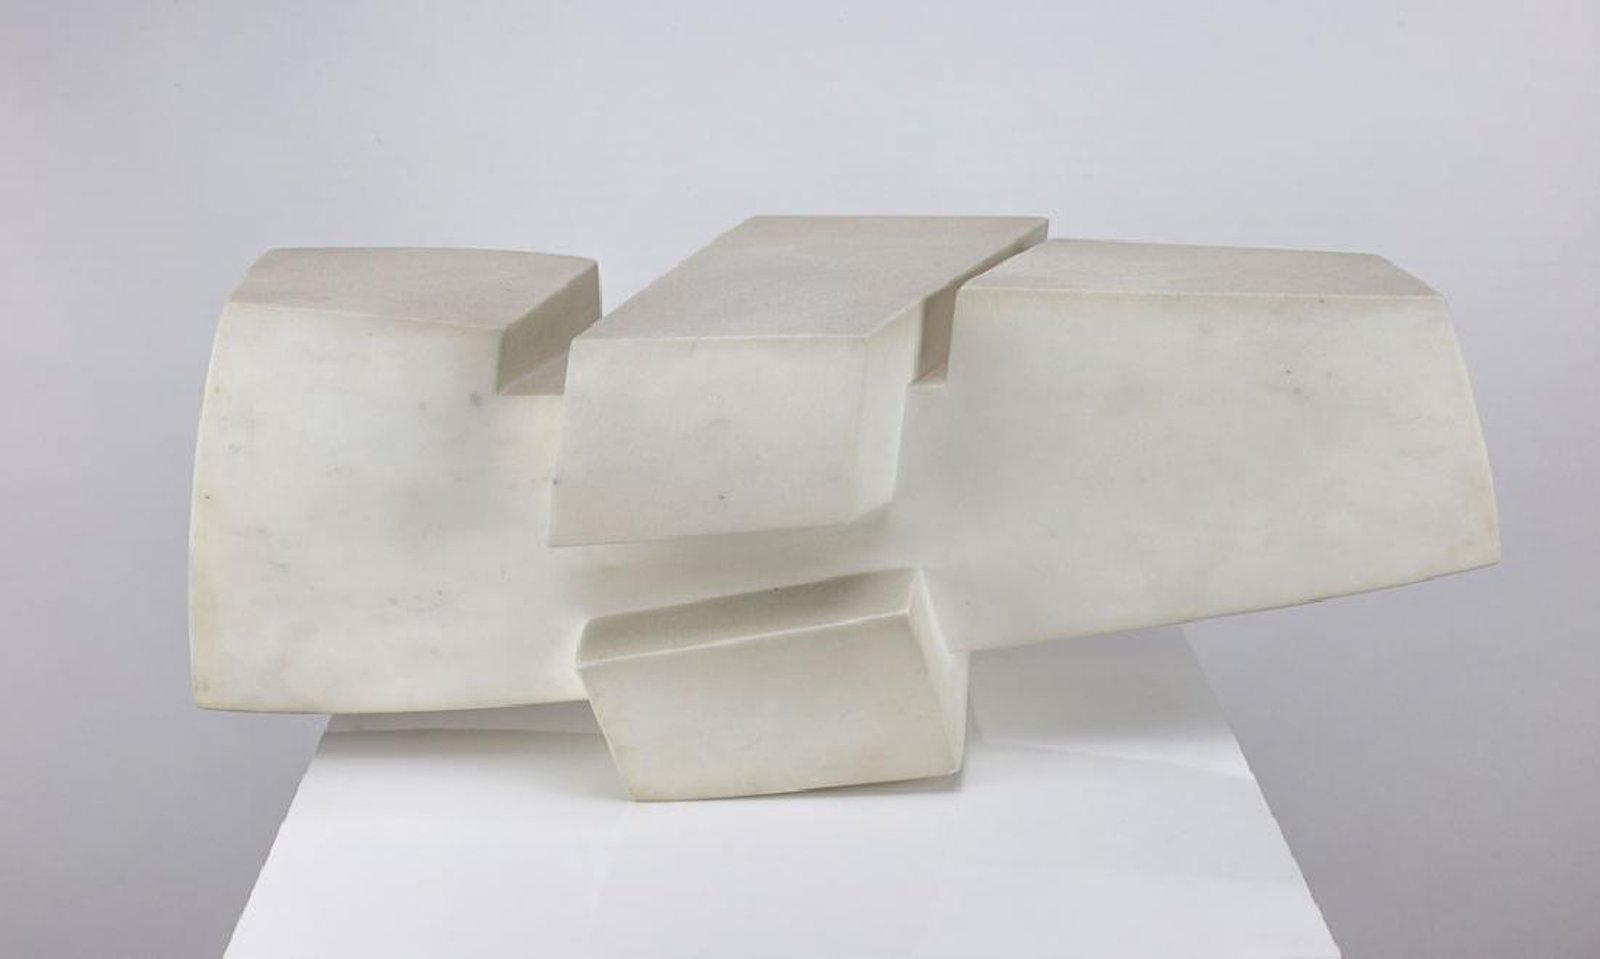 James Rosati (American, 1912-1988) Marble Sculpture, 1965. Sold For $9,375 At Capsule Gallery Auction